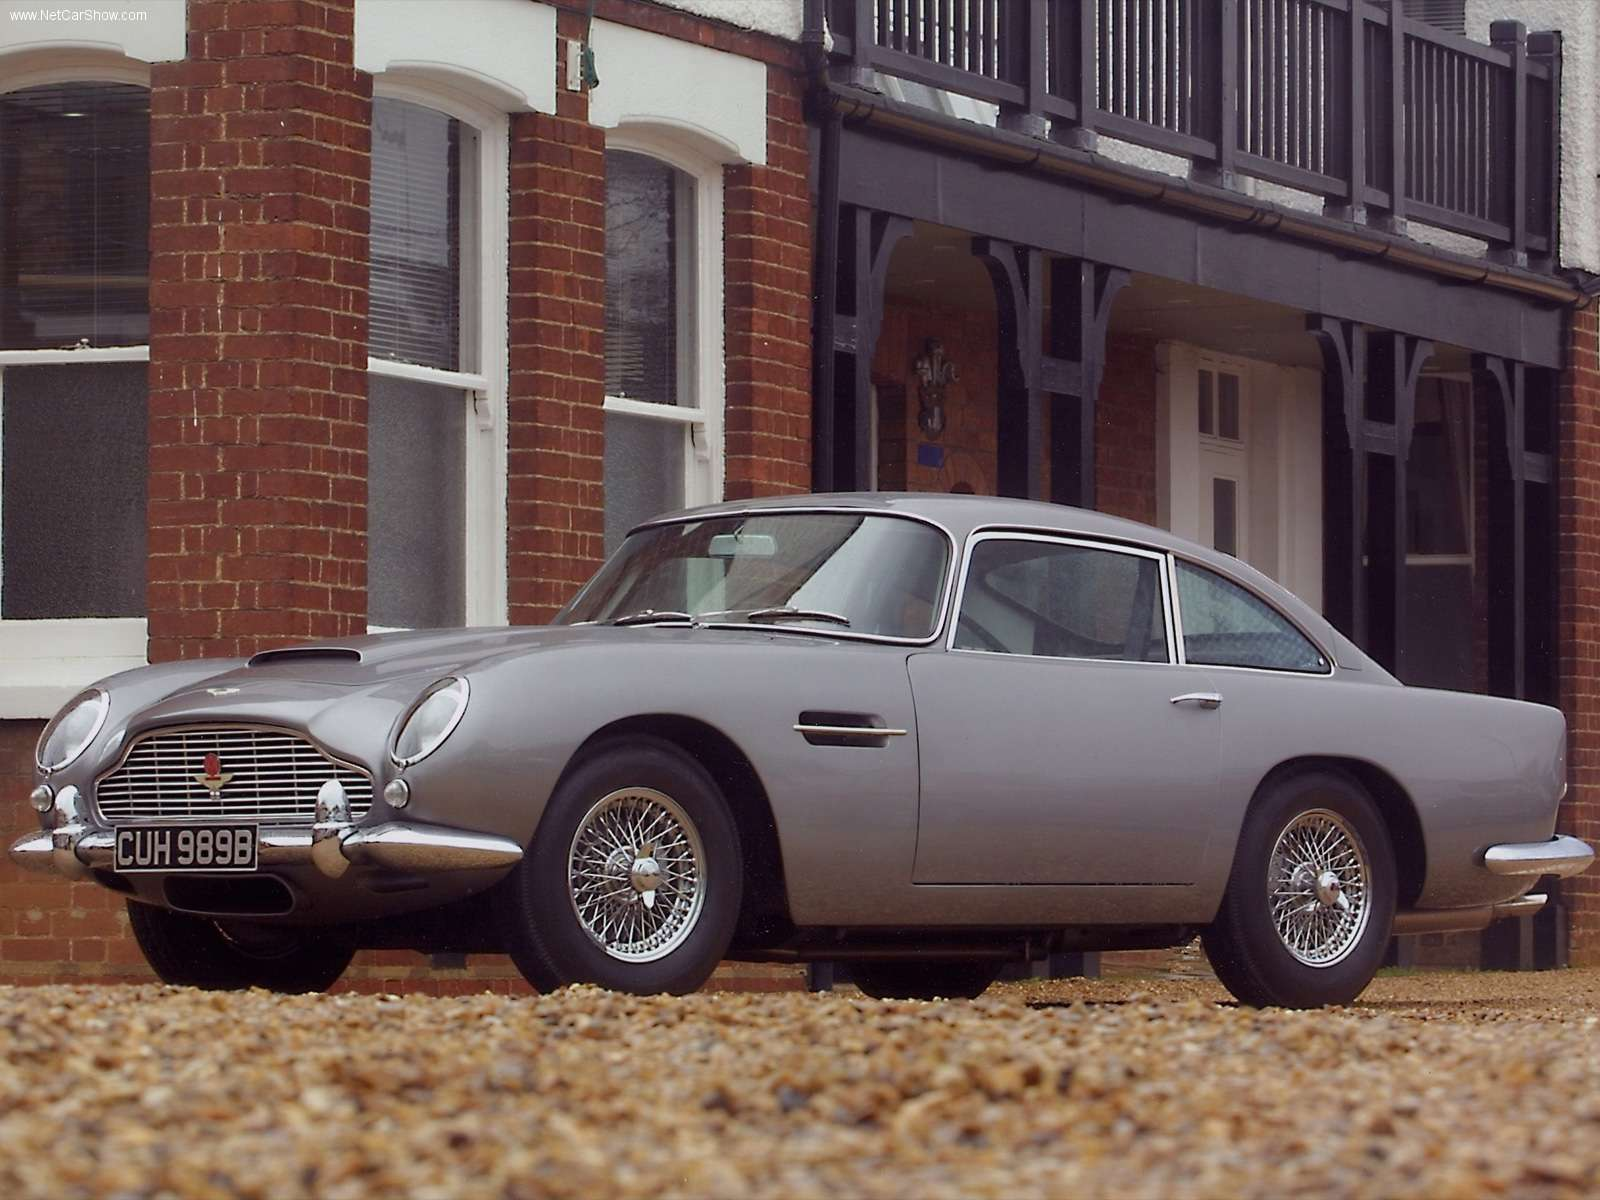 tuning aston martin db5 vantage coupe 1964 online. Black Bedroom Furniture Sets. Home Design Ideas